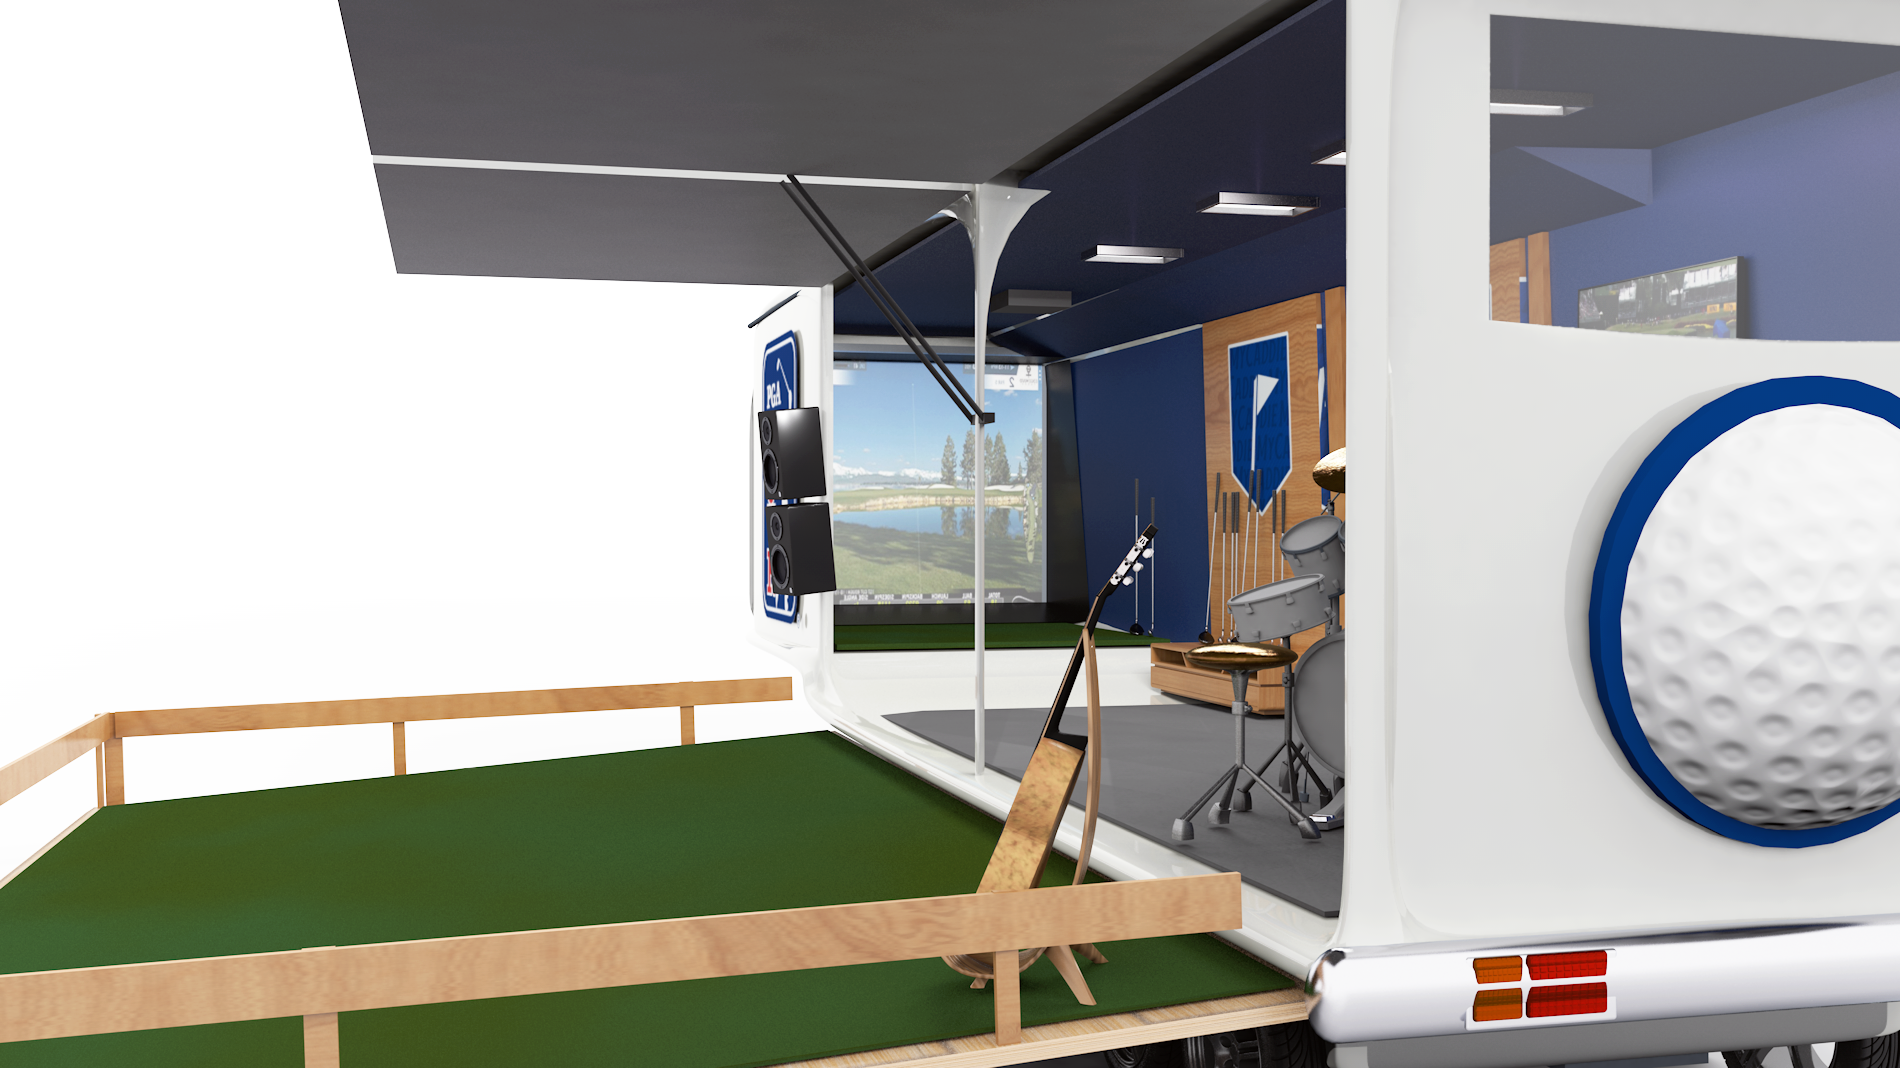 Interior of trailer showing golf simulator